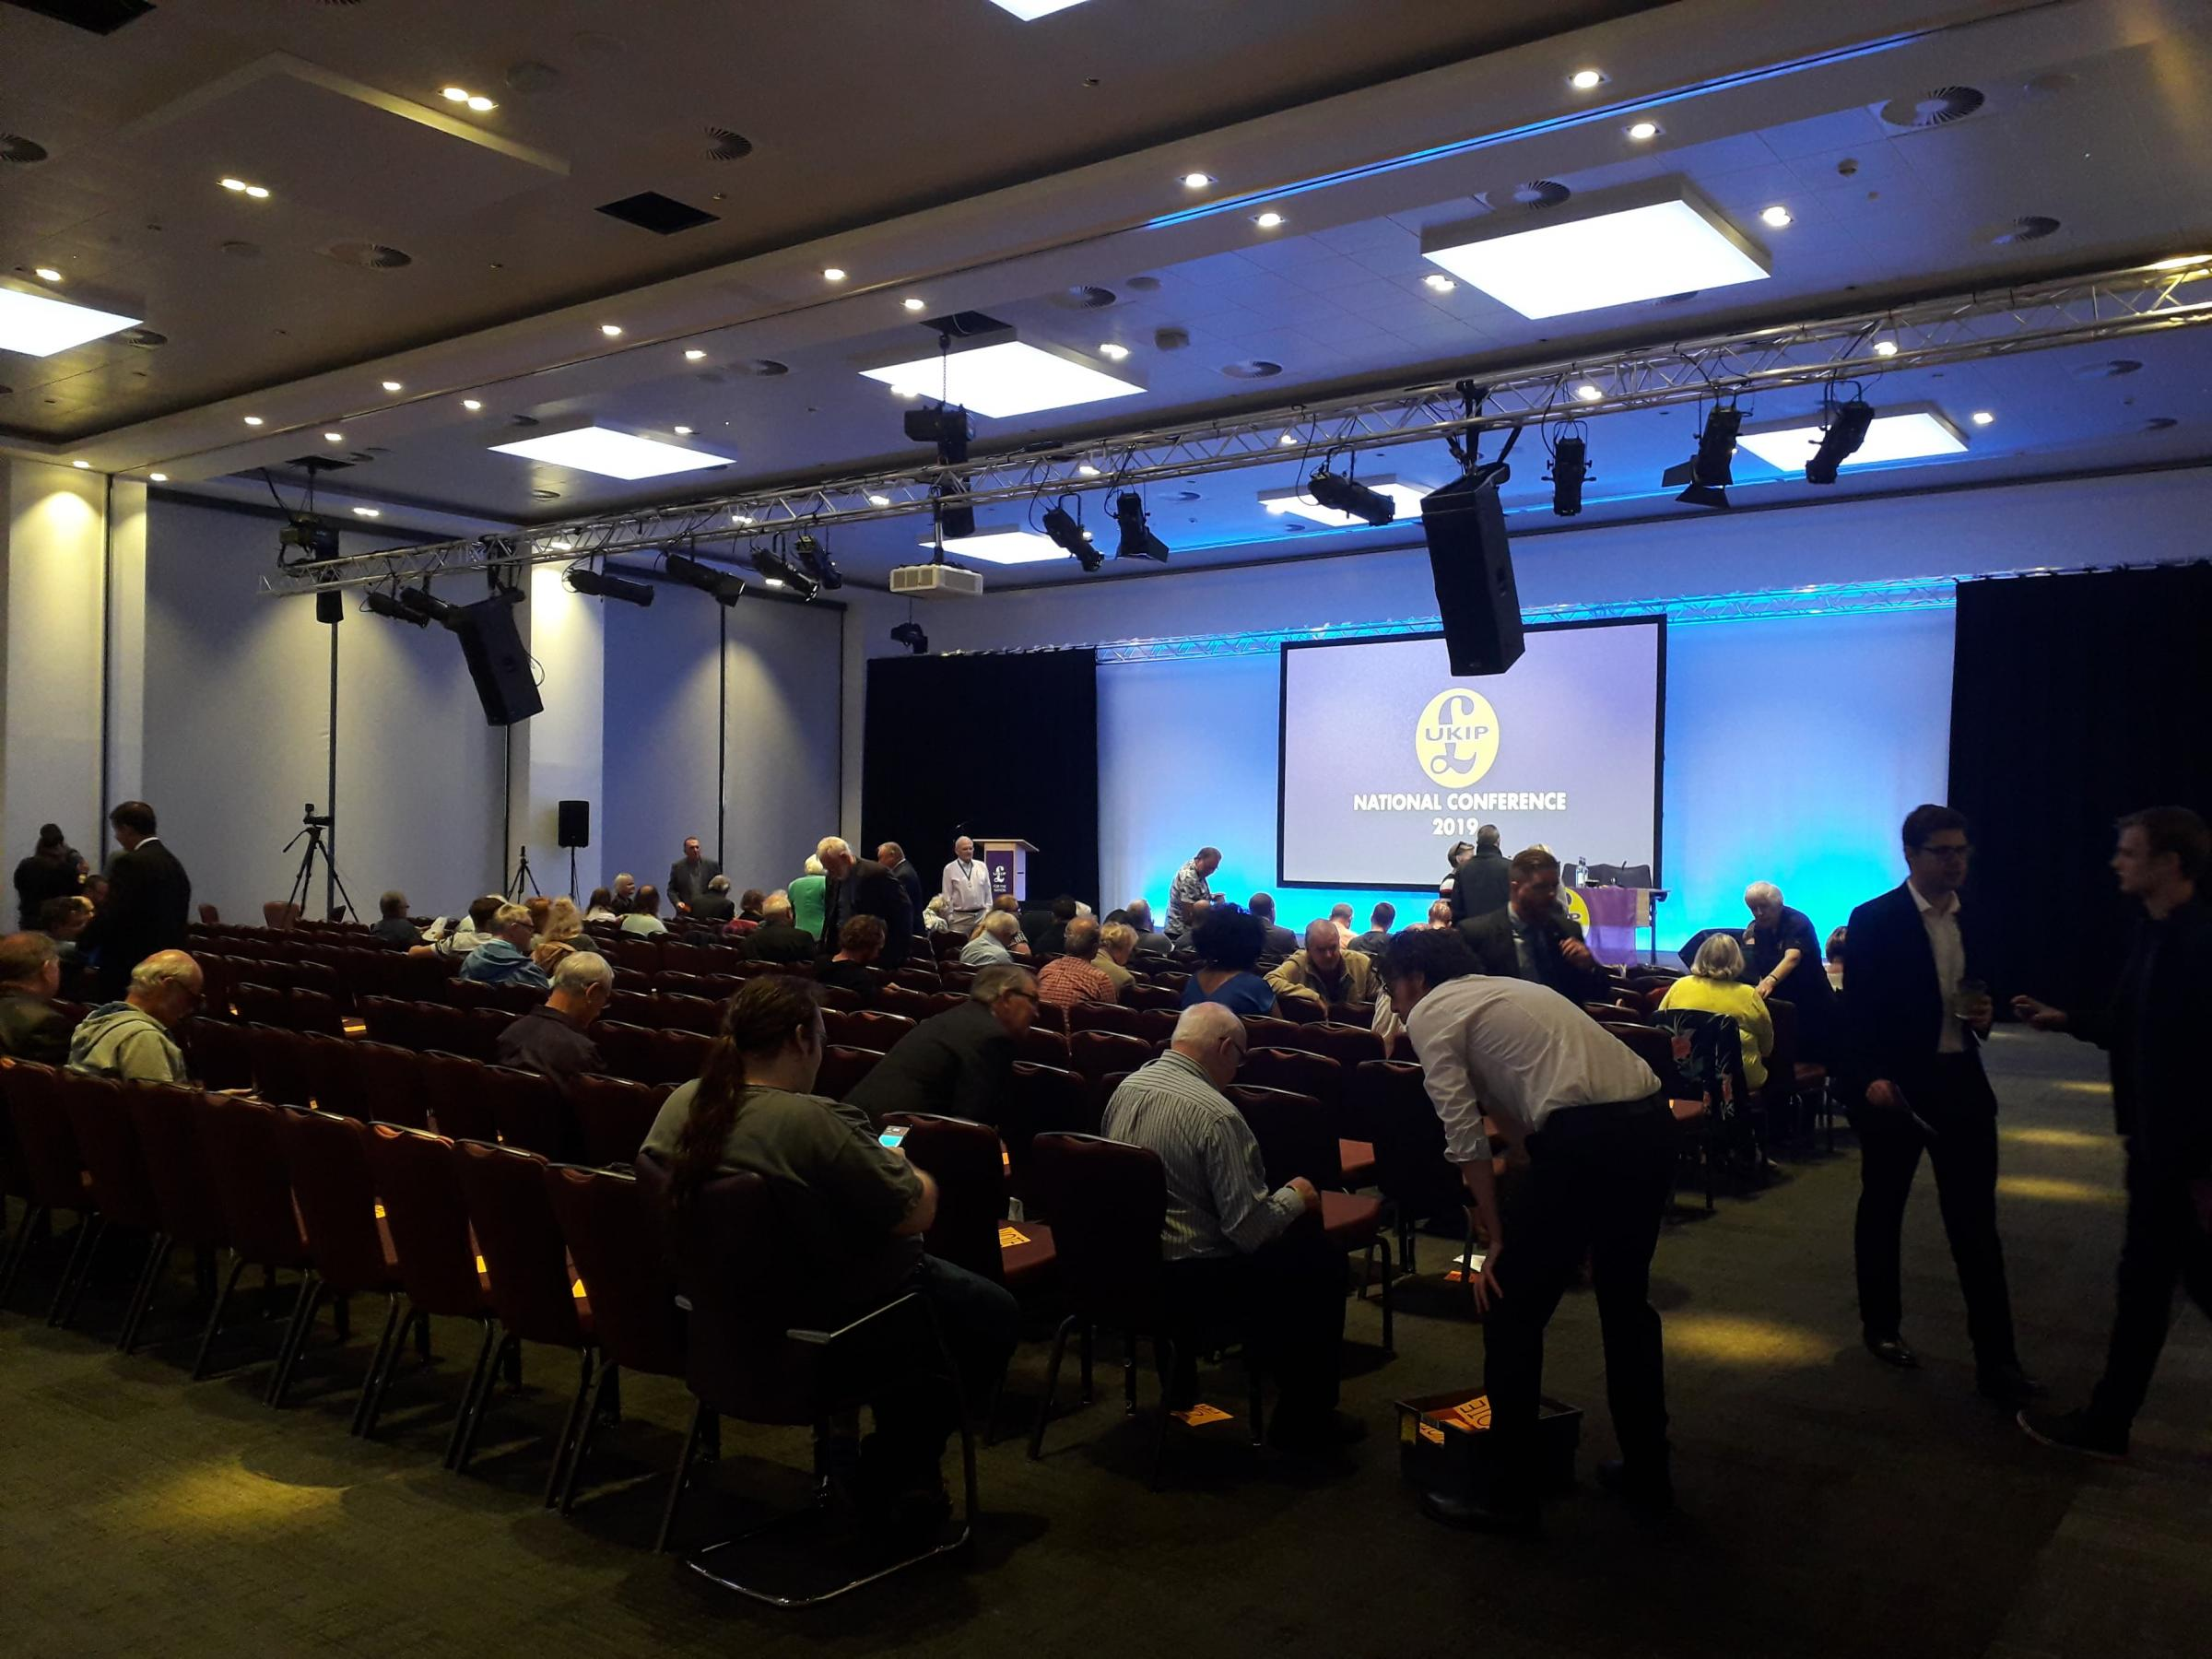 Empty seats and no-shows blight UKIP party conference at the ICC Wales